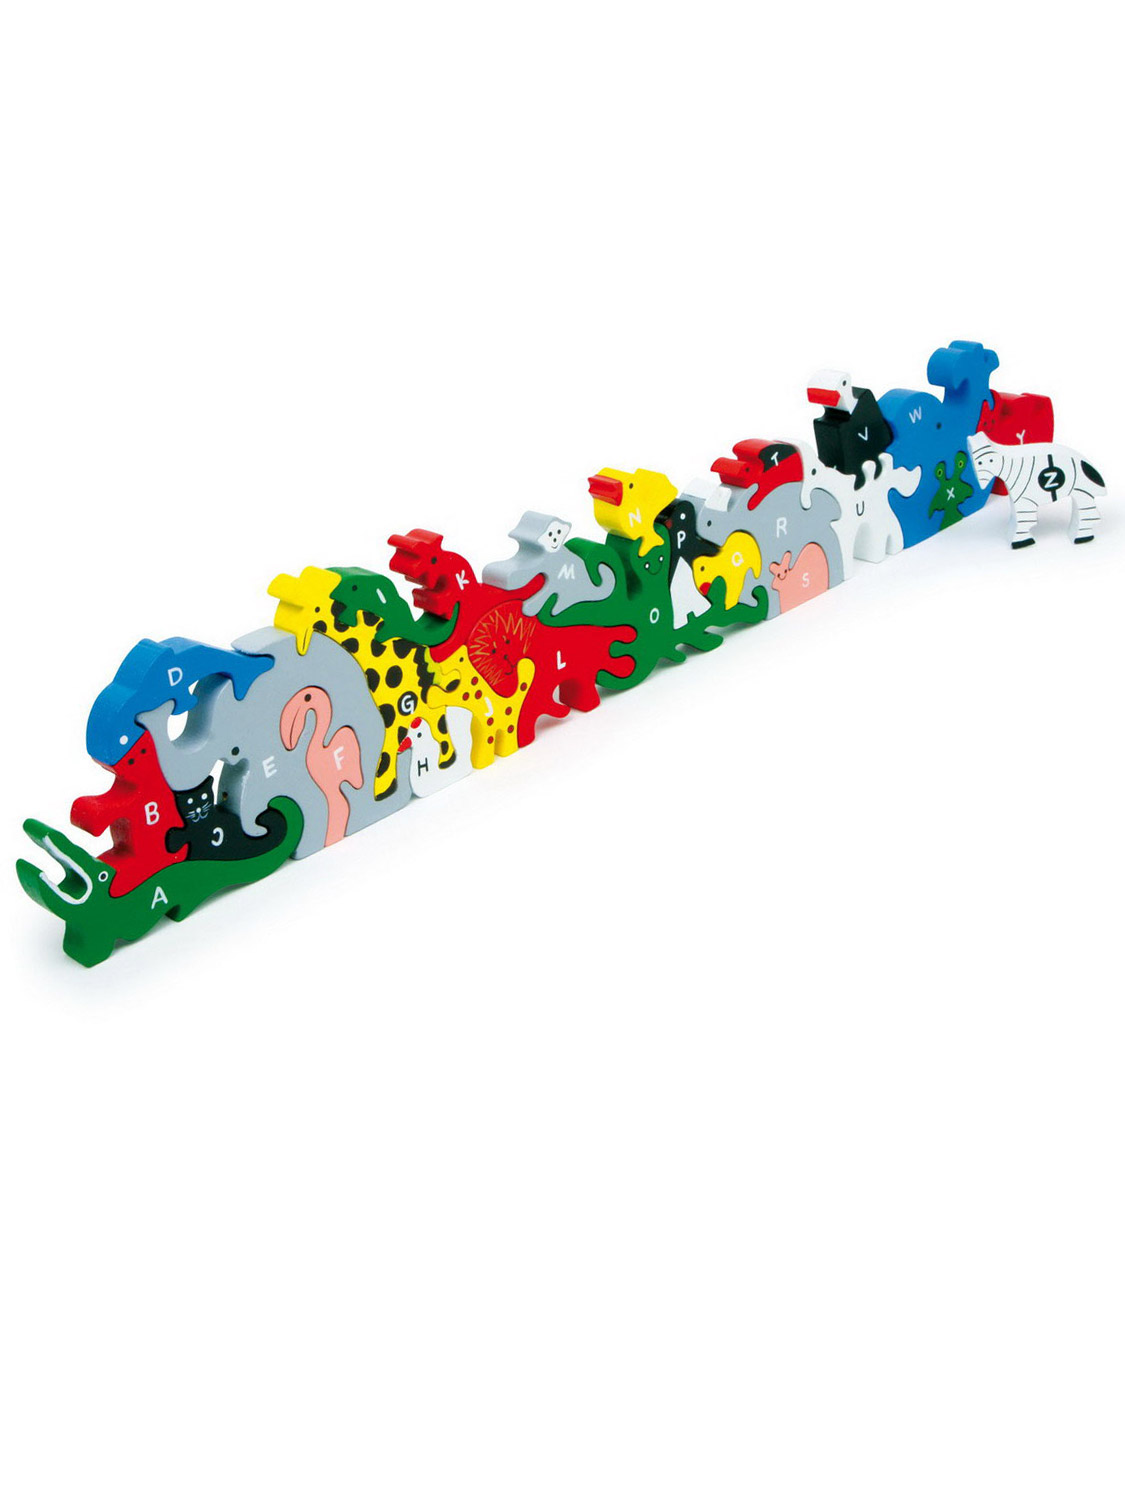 Deluxe-Chunky-3D-Standing-Jigsaw-Puzzle-Wooden-Animal-Alphabet-Letter-ABC-Toy thumbnail 4